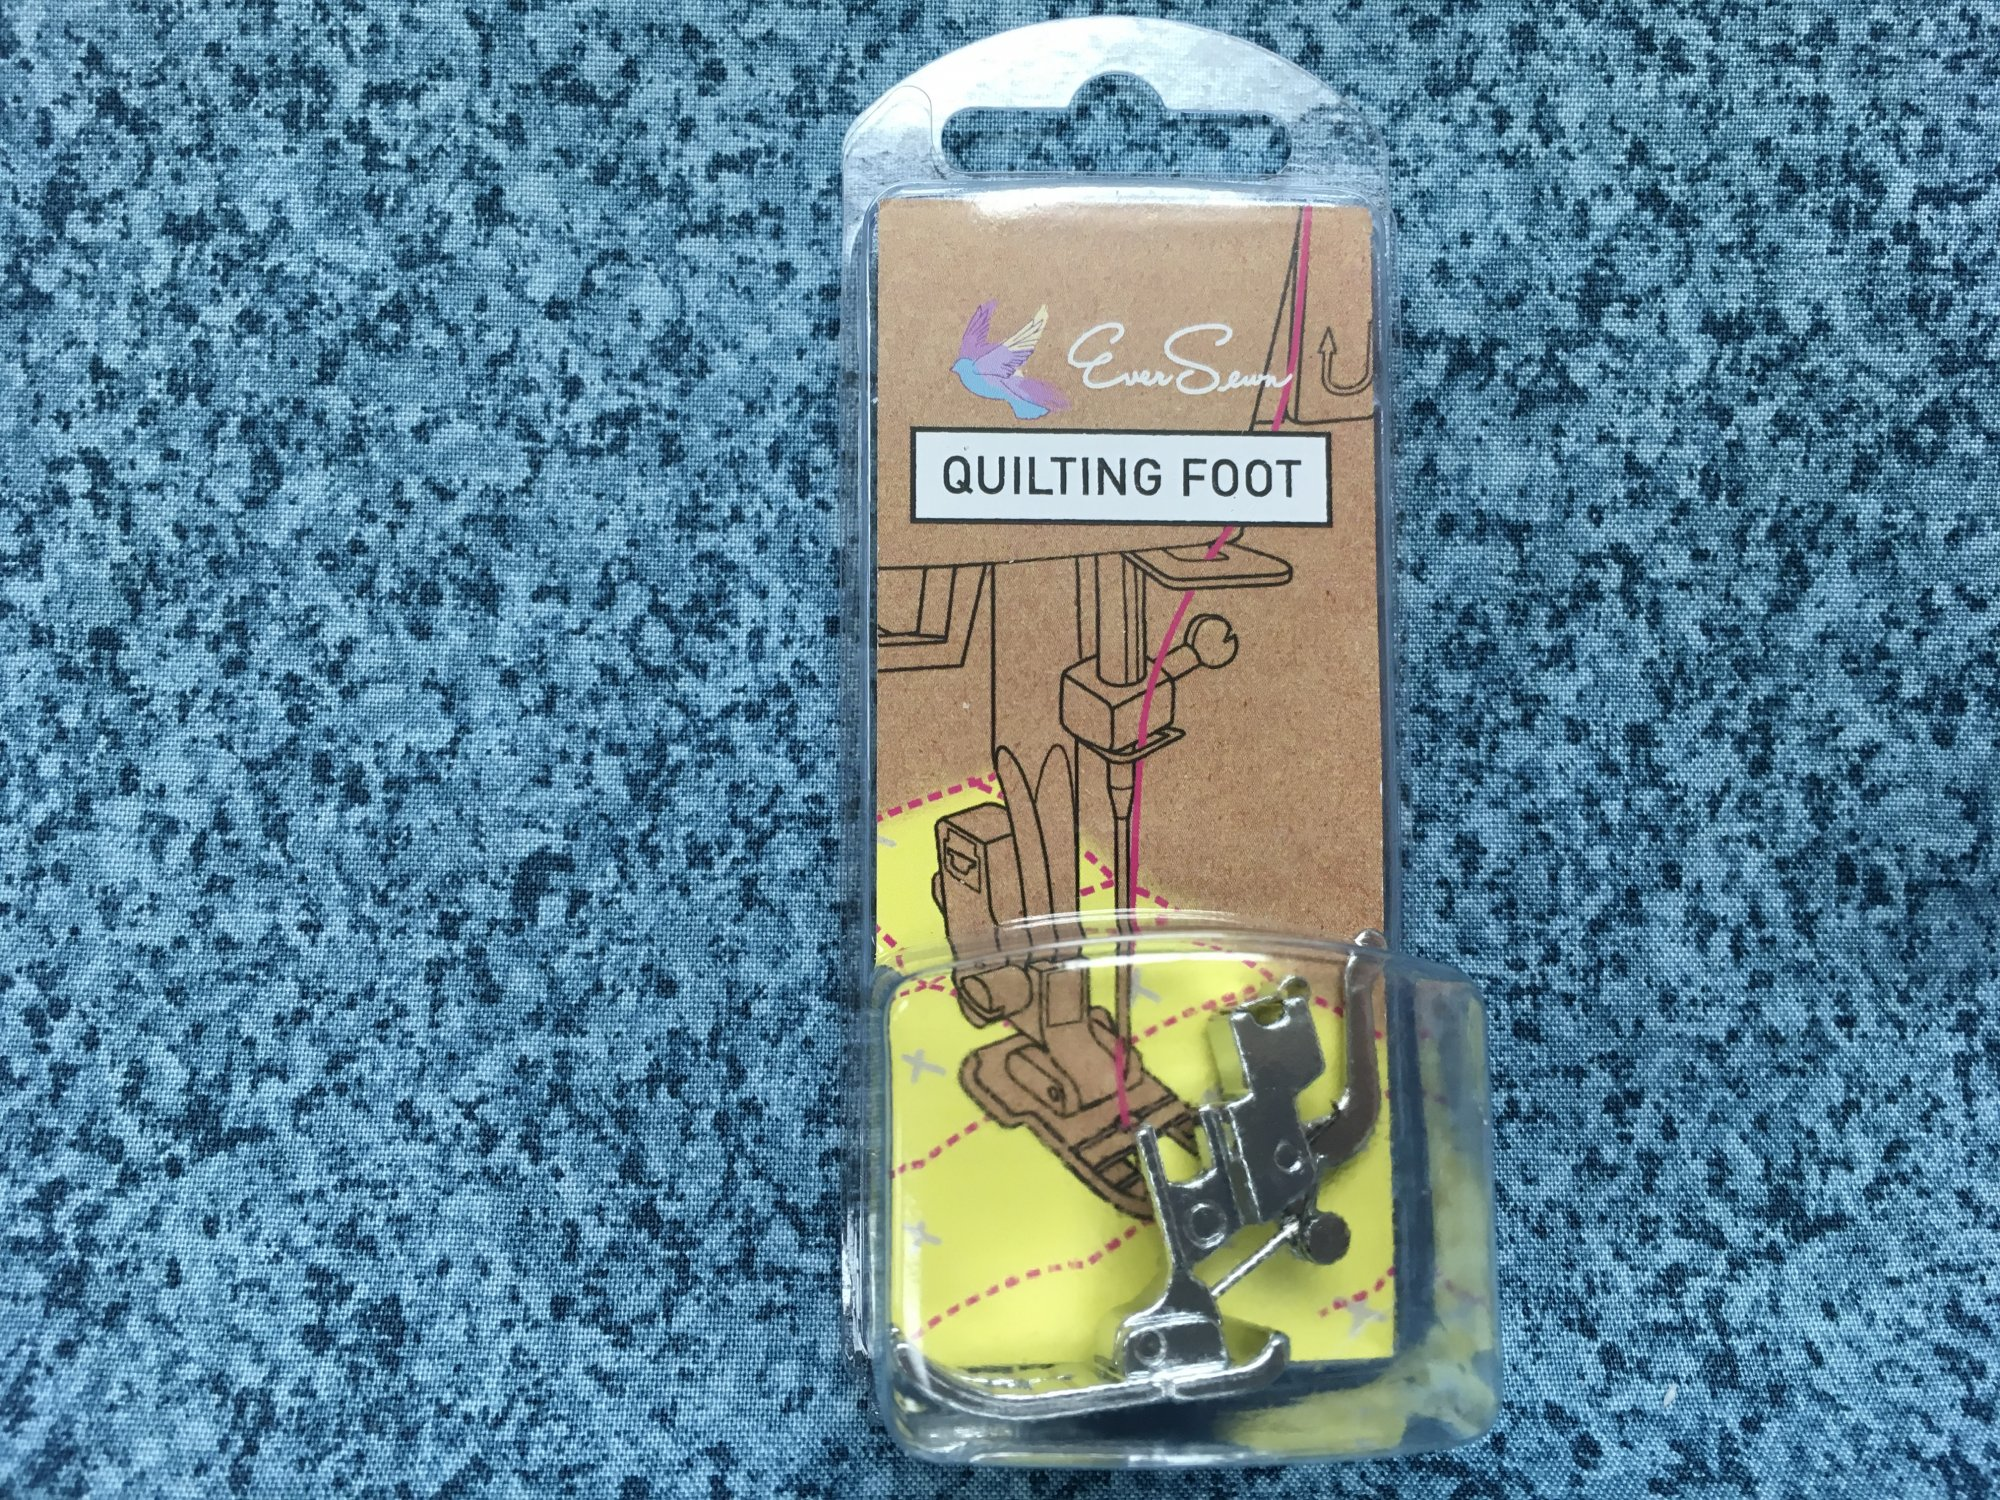 Quilting 1/4 inch Foot 321417008 by EverSewn